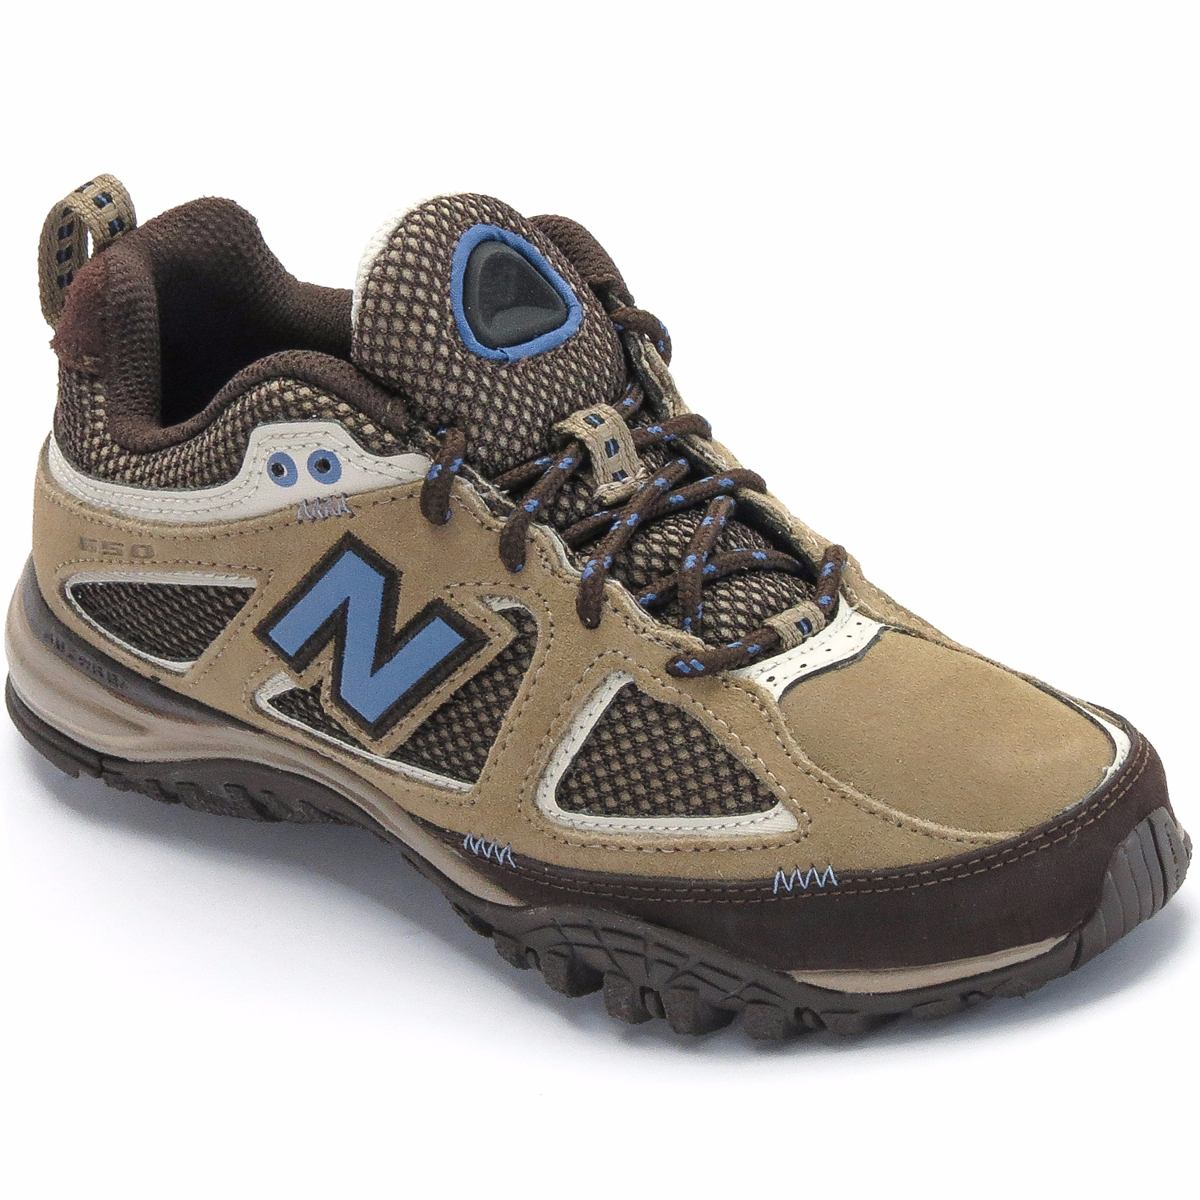 Zapatillas - New Balance Zapatillas New Balance Outdoor Wo650